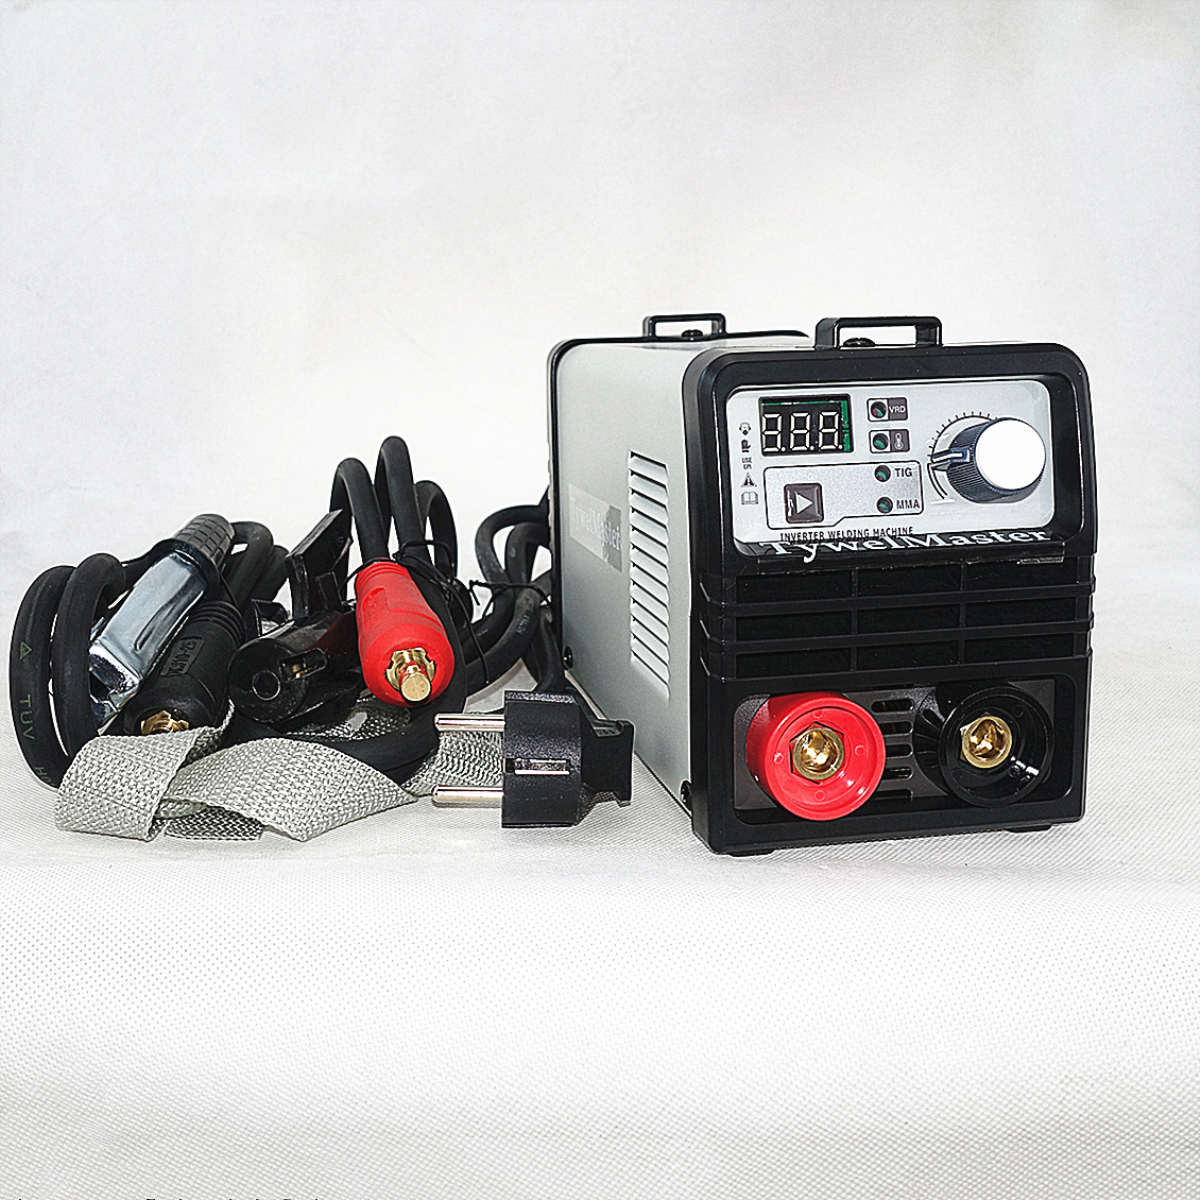 140/160A DC Inverter TIG Welder 160-270V VRD Stick Electrode 1.0-3.2mm Portable IGBT MMA Arc Welding Machine